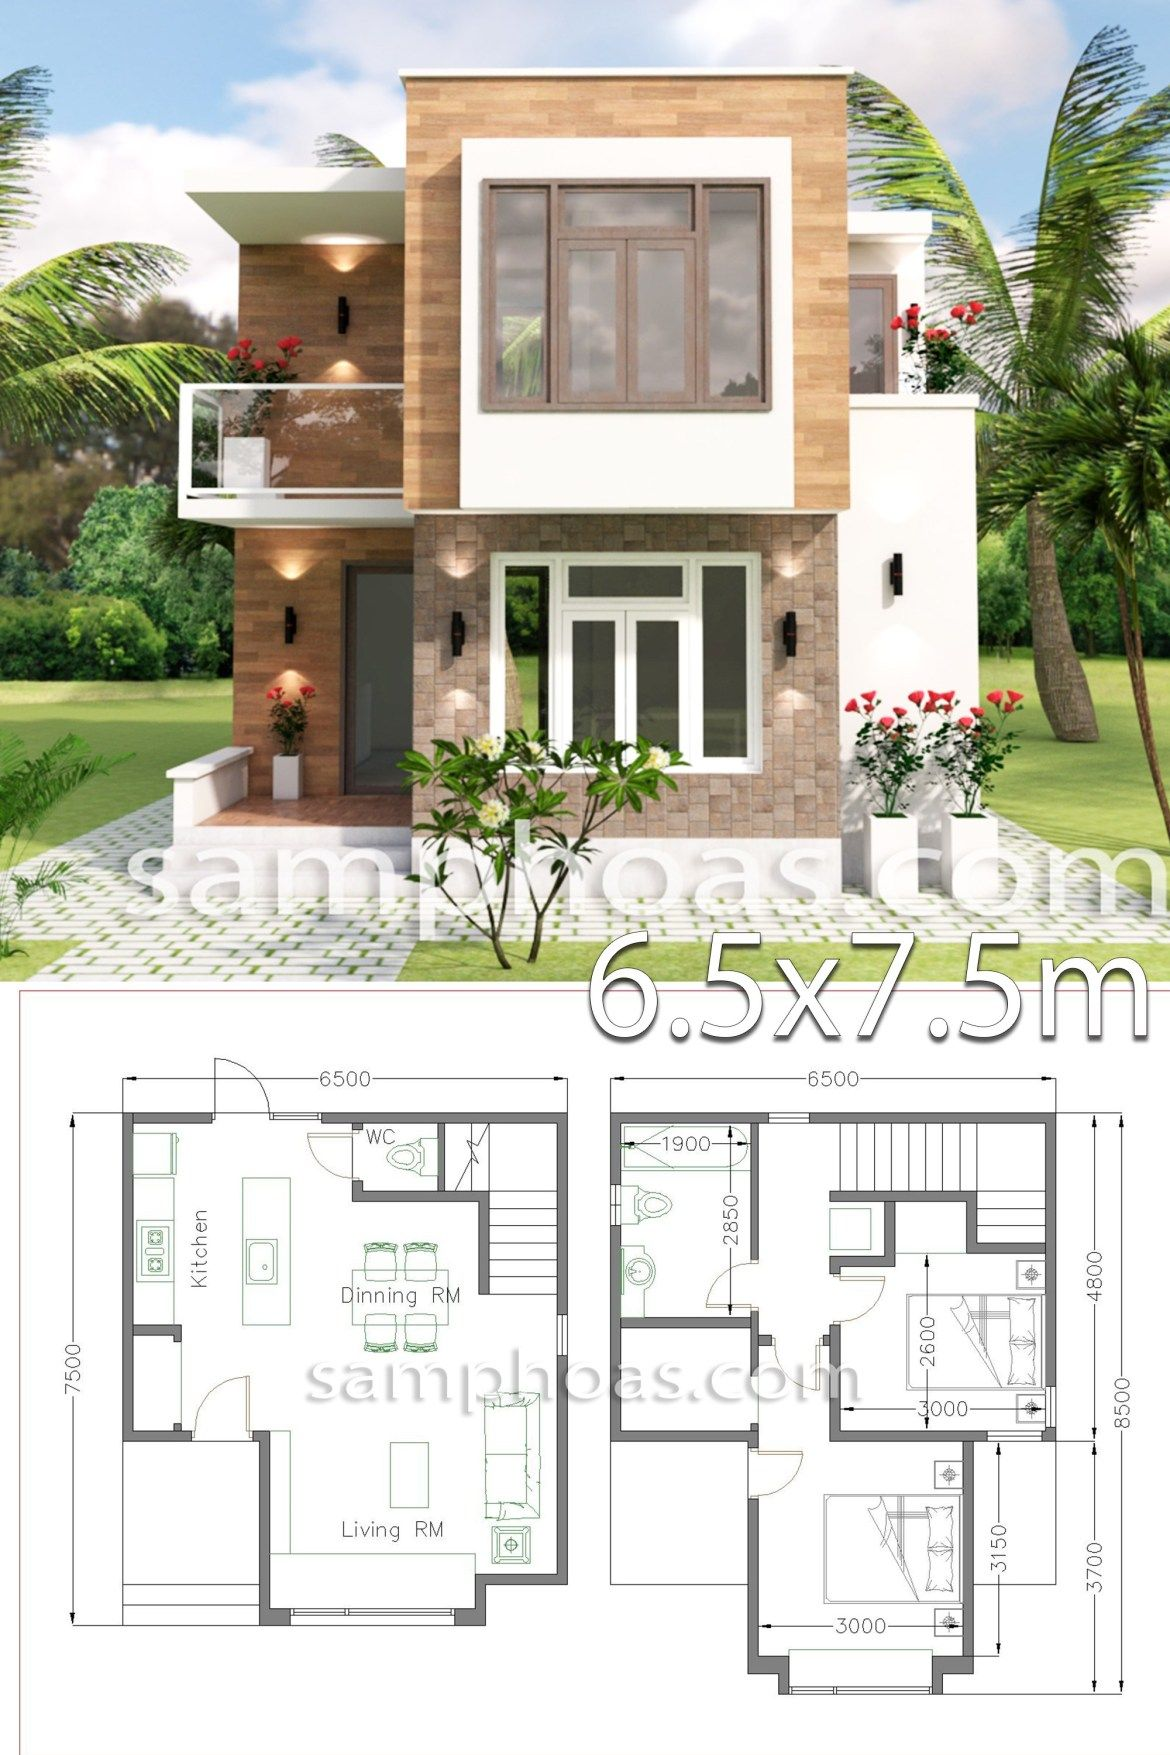 Small House Design with Full Plan 6 5x7 5m 2 Bedrooms is part of House design - The House has Car Parking small garden Living room, Dining room, Kitchen has door access to backyard, 2 Bedrooms with 1 bathrooms, 1 Restroom under